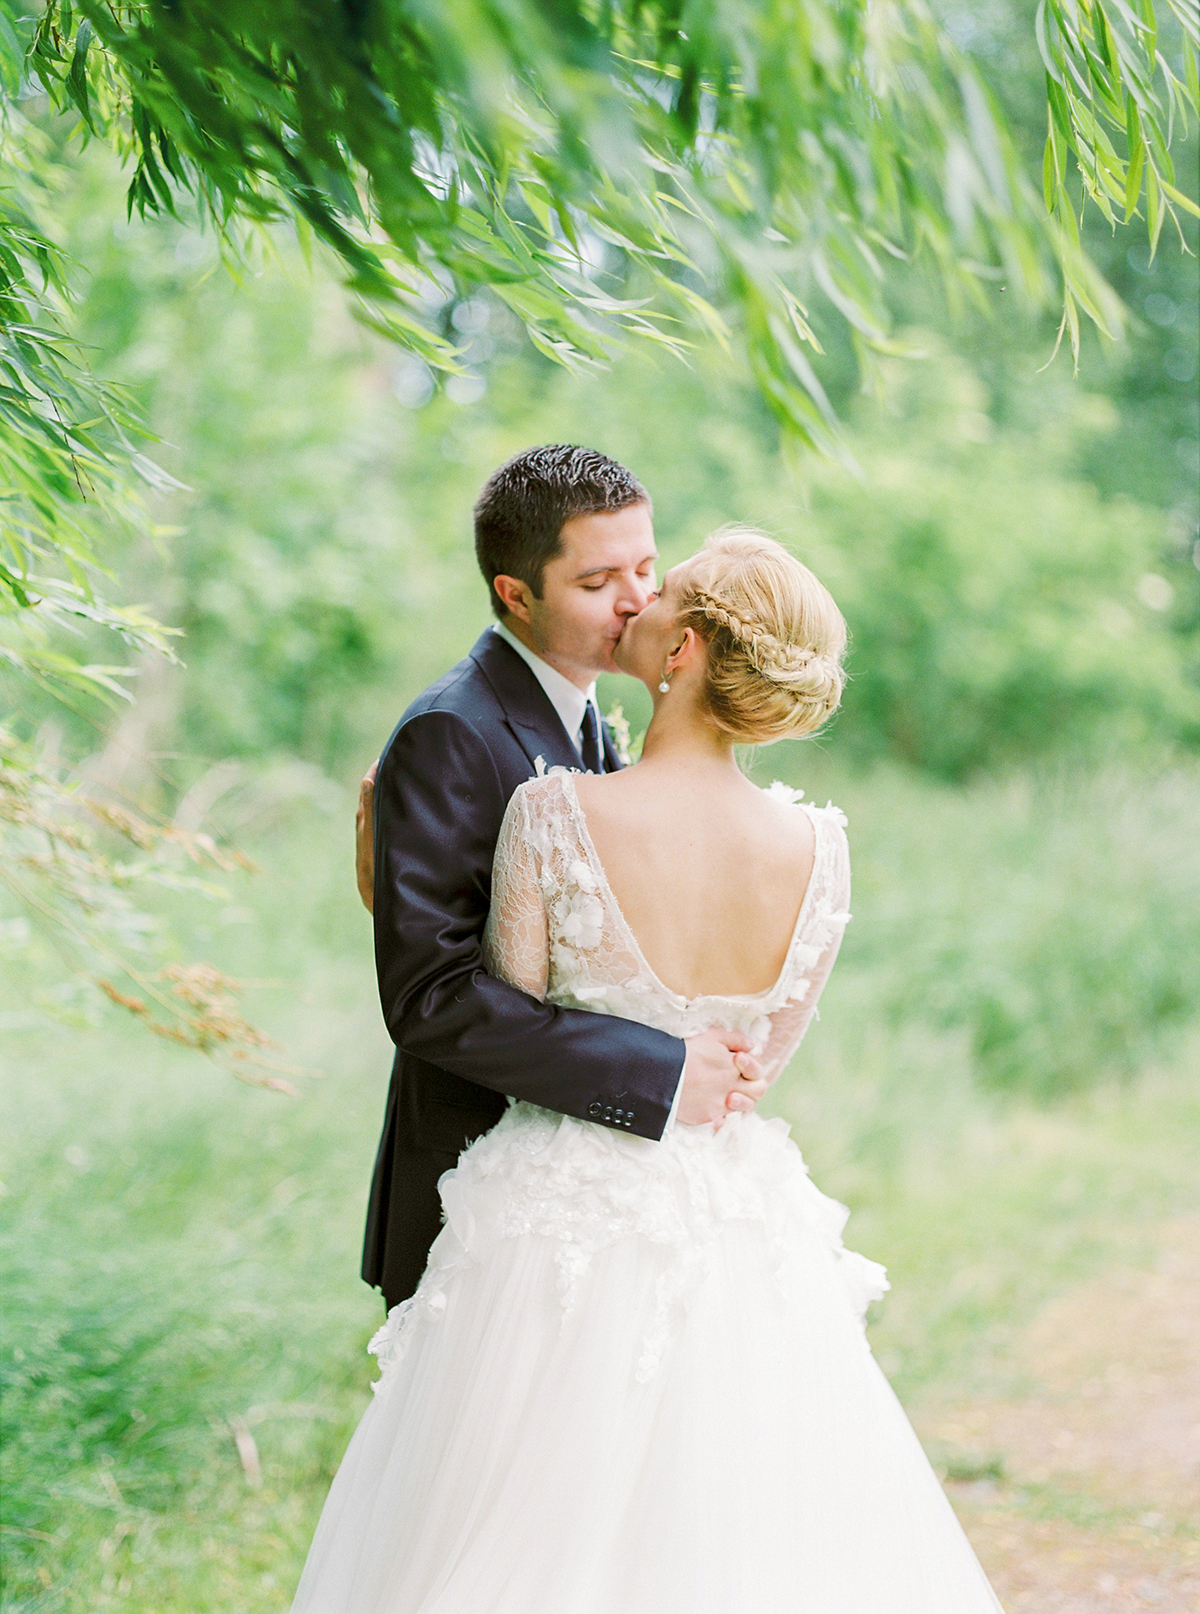 Landgut Stober Hochzeit | Fine Art Film Wedding Photography by Ashley Ludaescher (36)